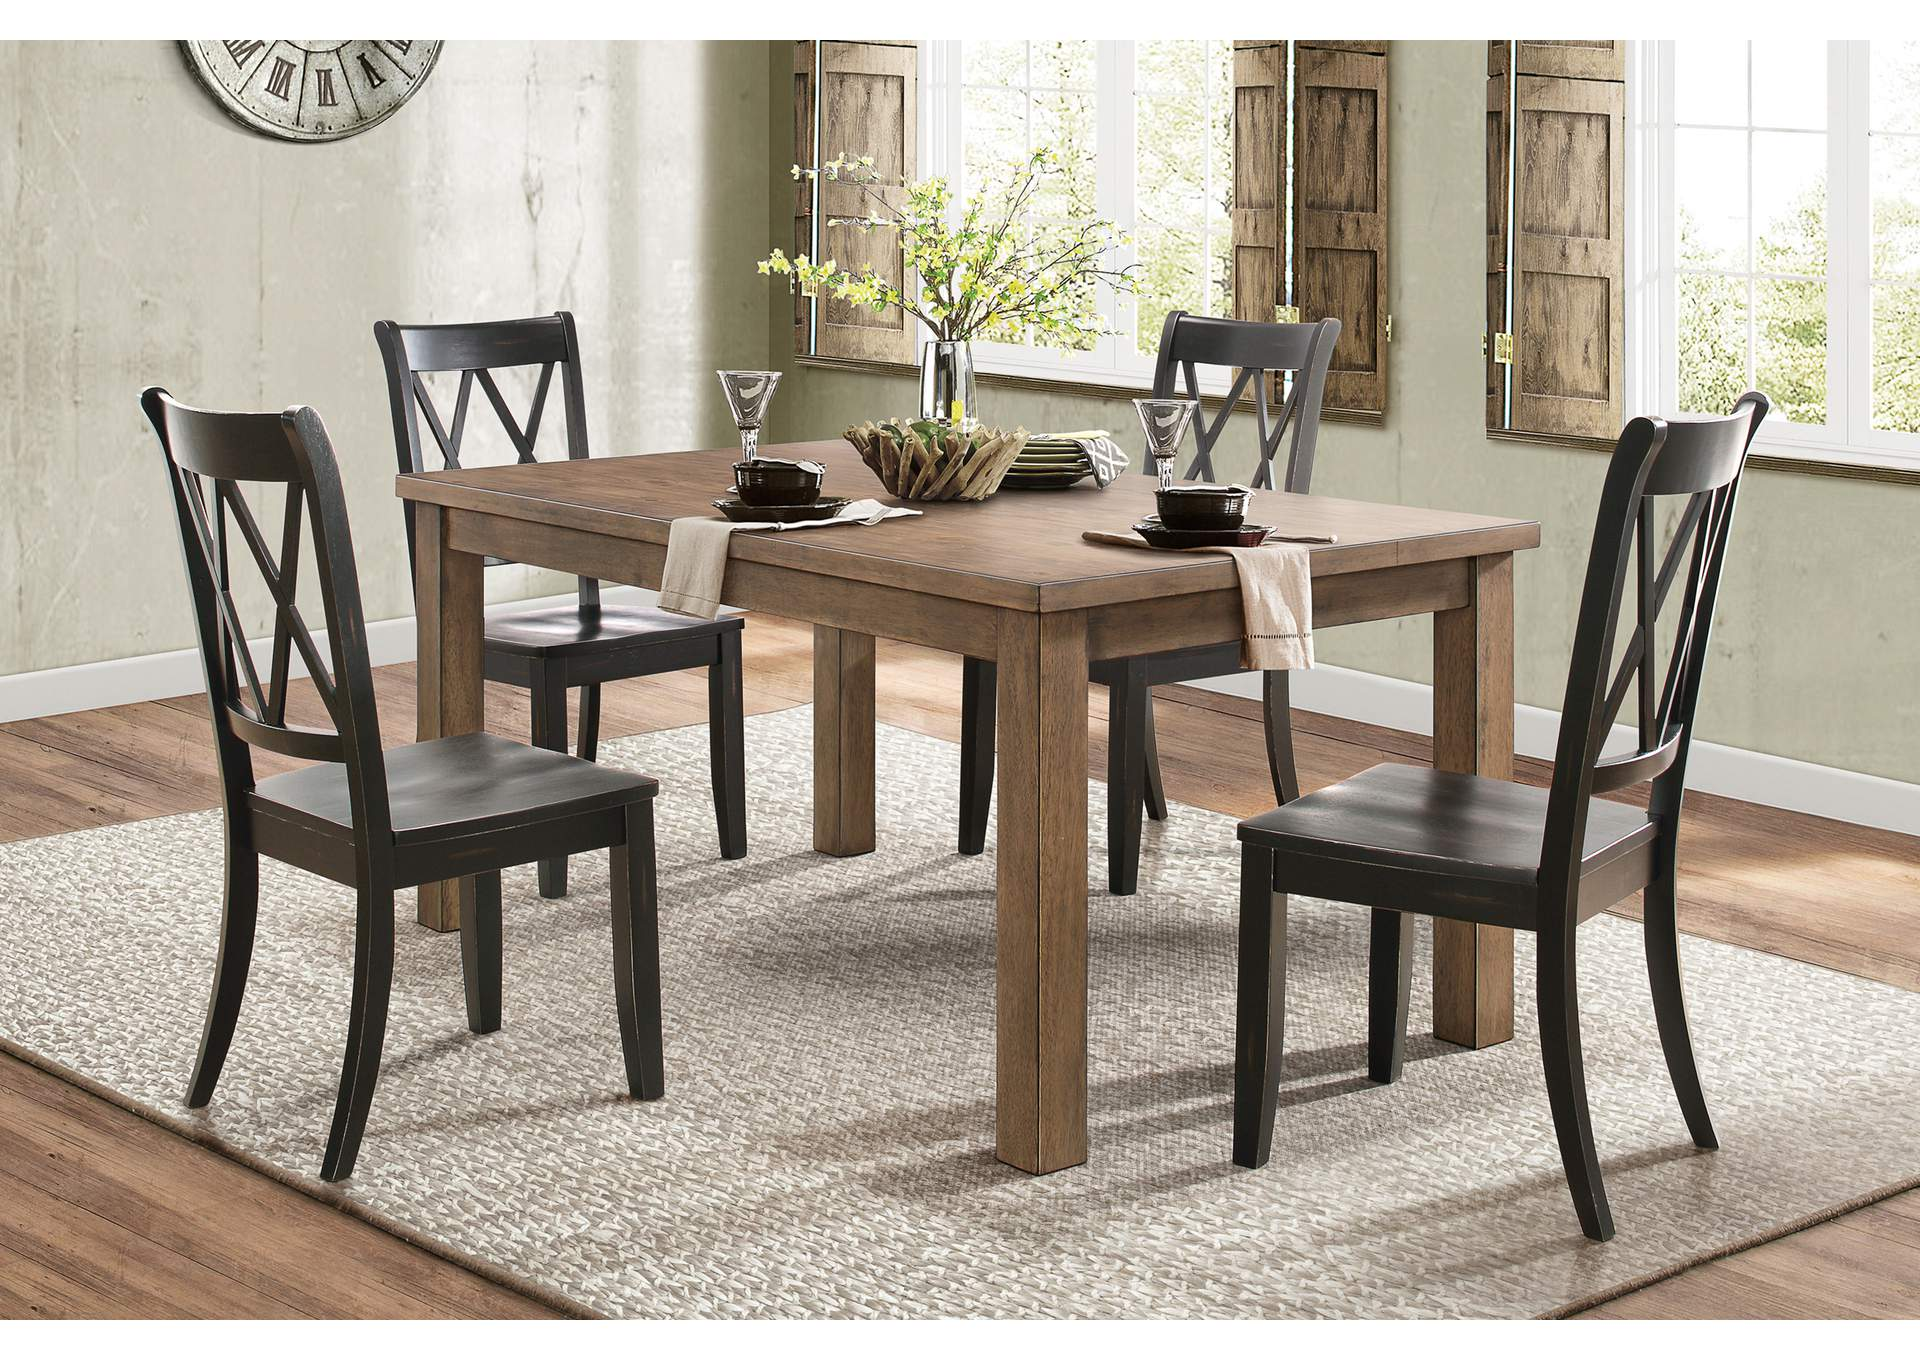 Oak Dining Table,Homelegance